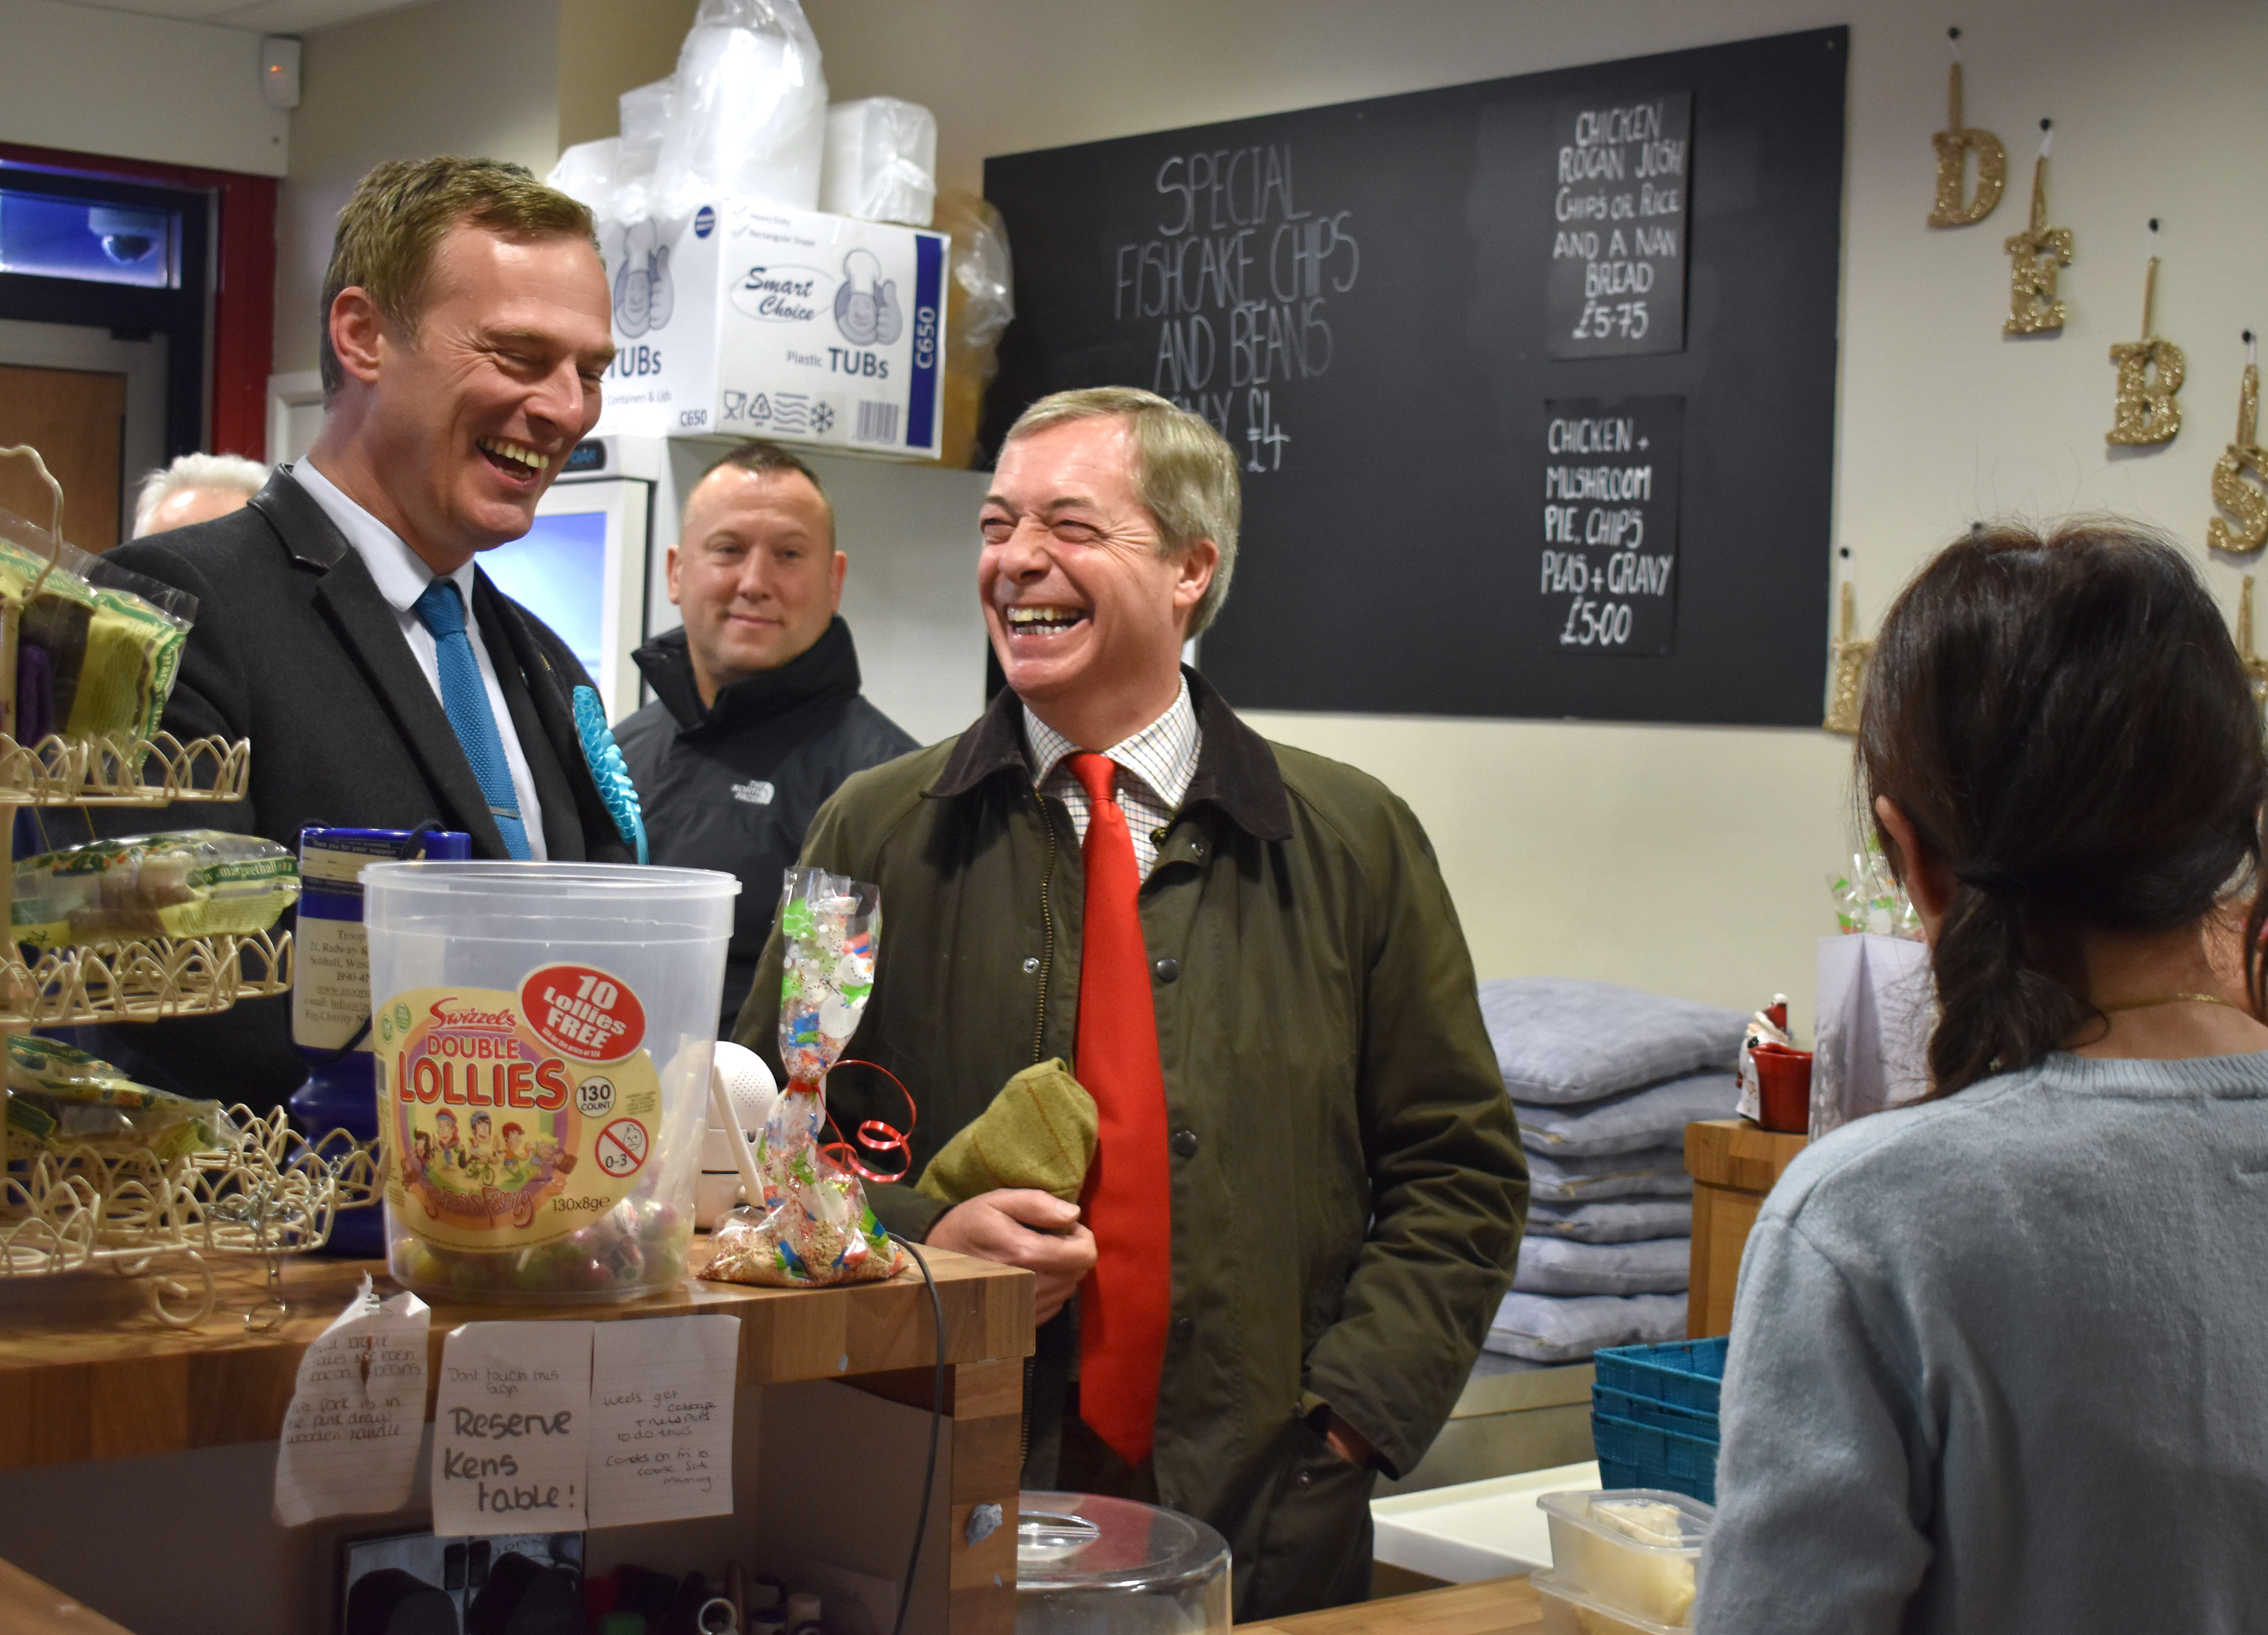 Brexit Party leader Nigel Farage (centre) in Deb's Diner in Sutton-in-Ashfield, Nottinghamshire, with party candidate in the area, MEP Martin Daubney (left) while election campaigning ahead of the General Election.